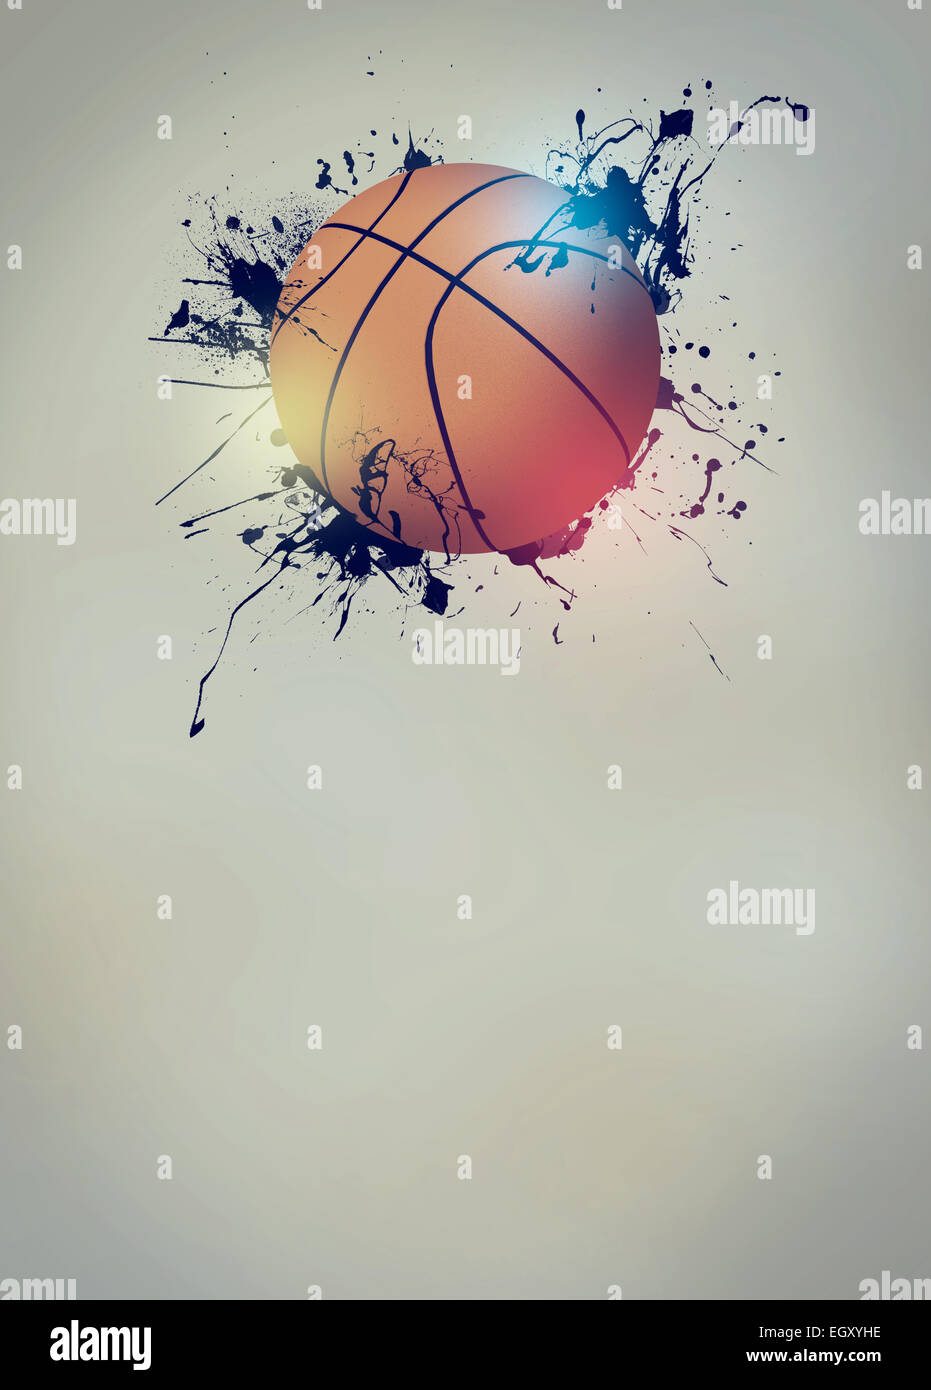 abstract basketball sport invitation poster or flyer